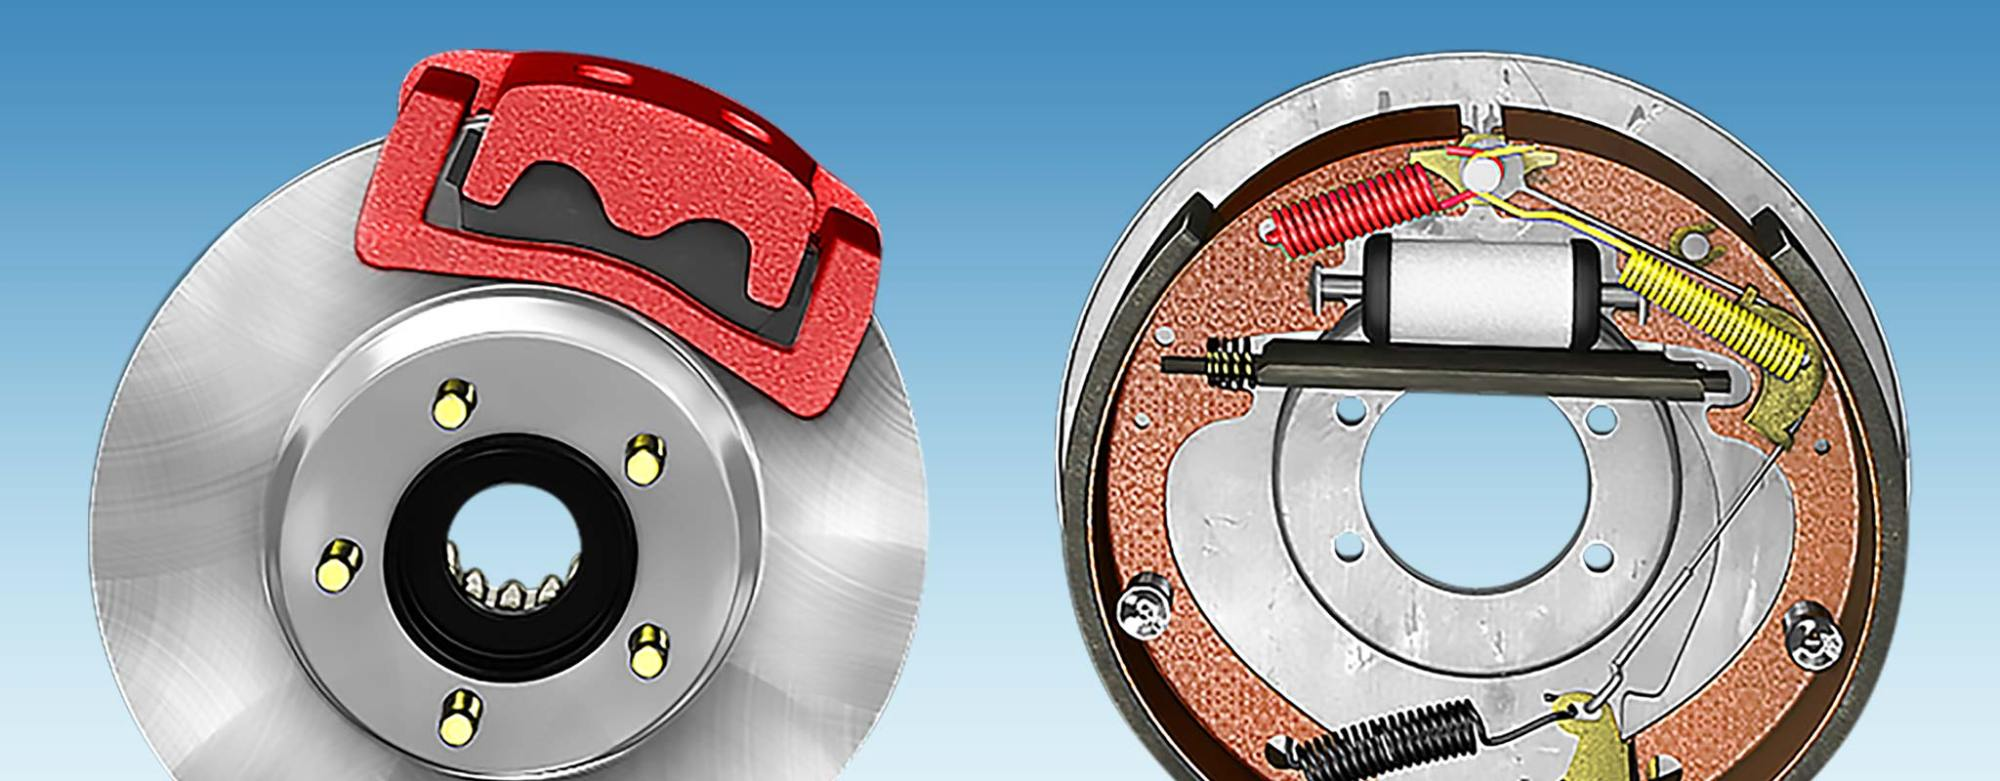 hight resolution of a side by side comparison of a disc brake and a drum brake